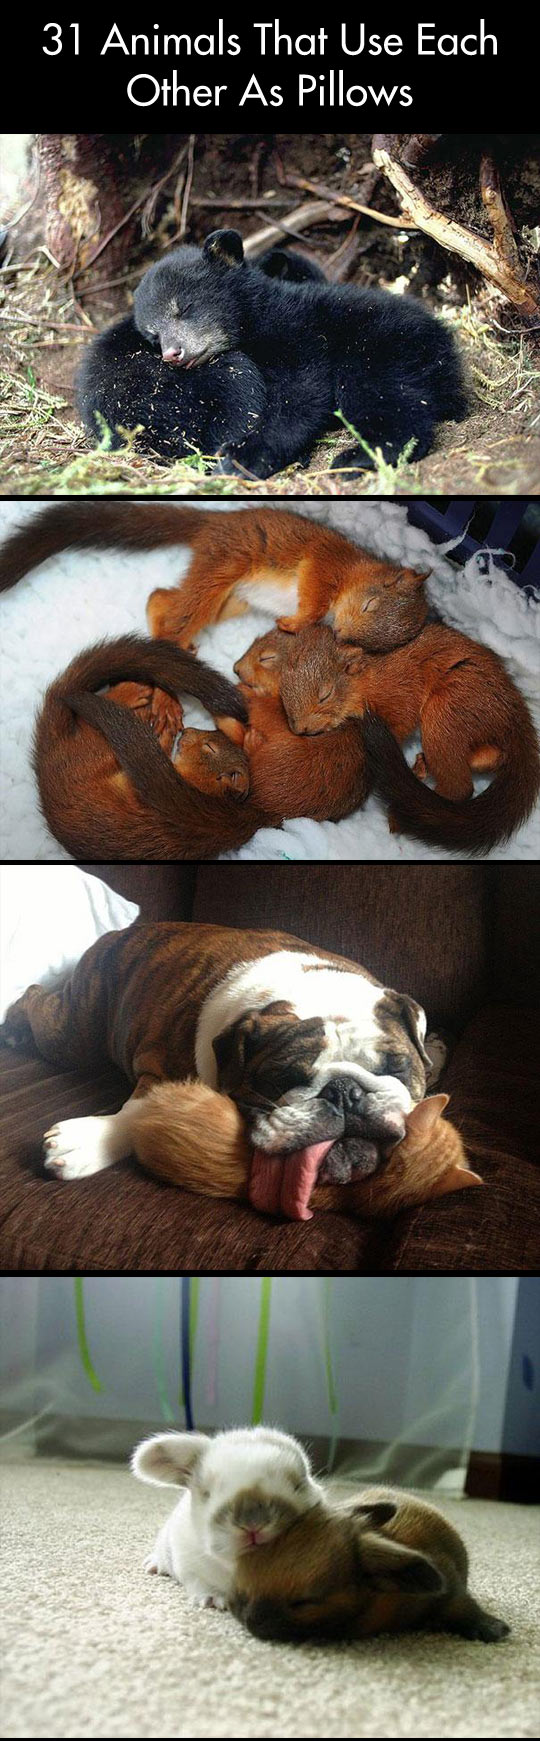 Pictures of animals that use each other as pillows...